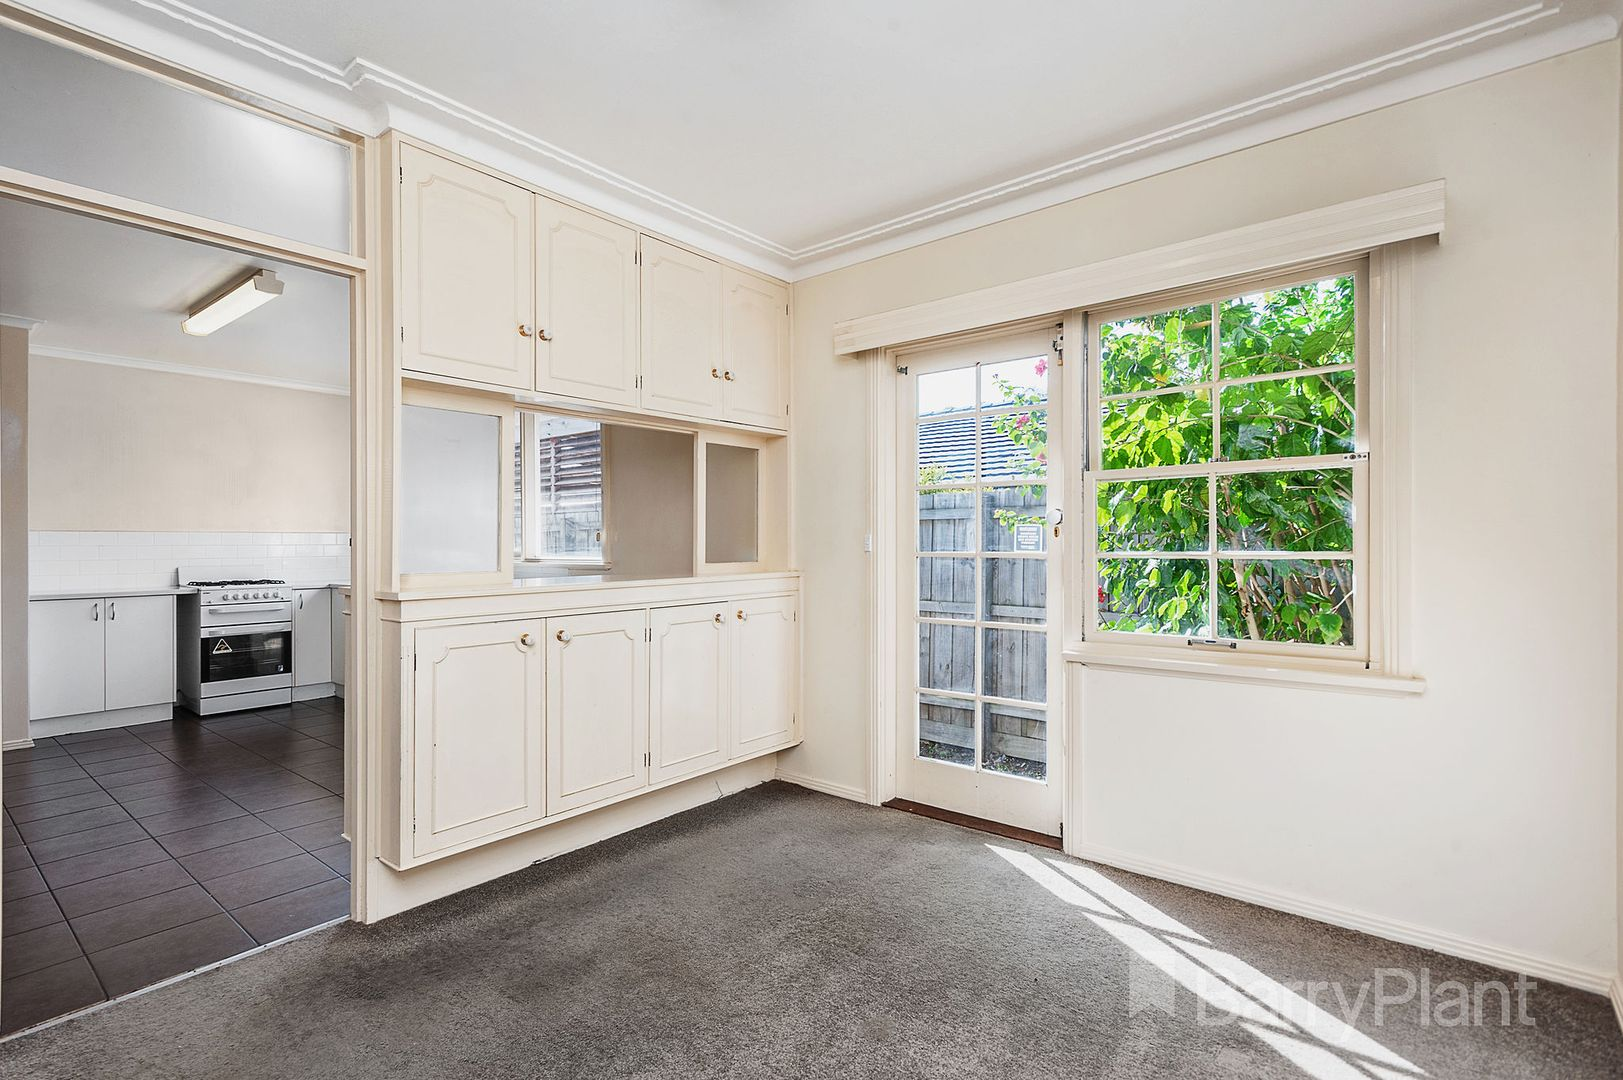 2/447 Beach Road, Beaumaris VIC 3193, Image 2